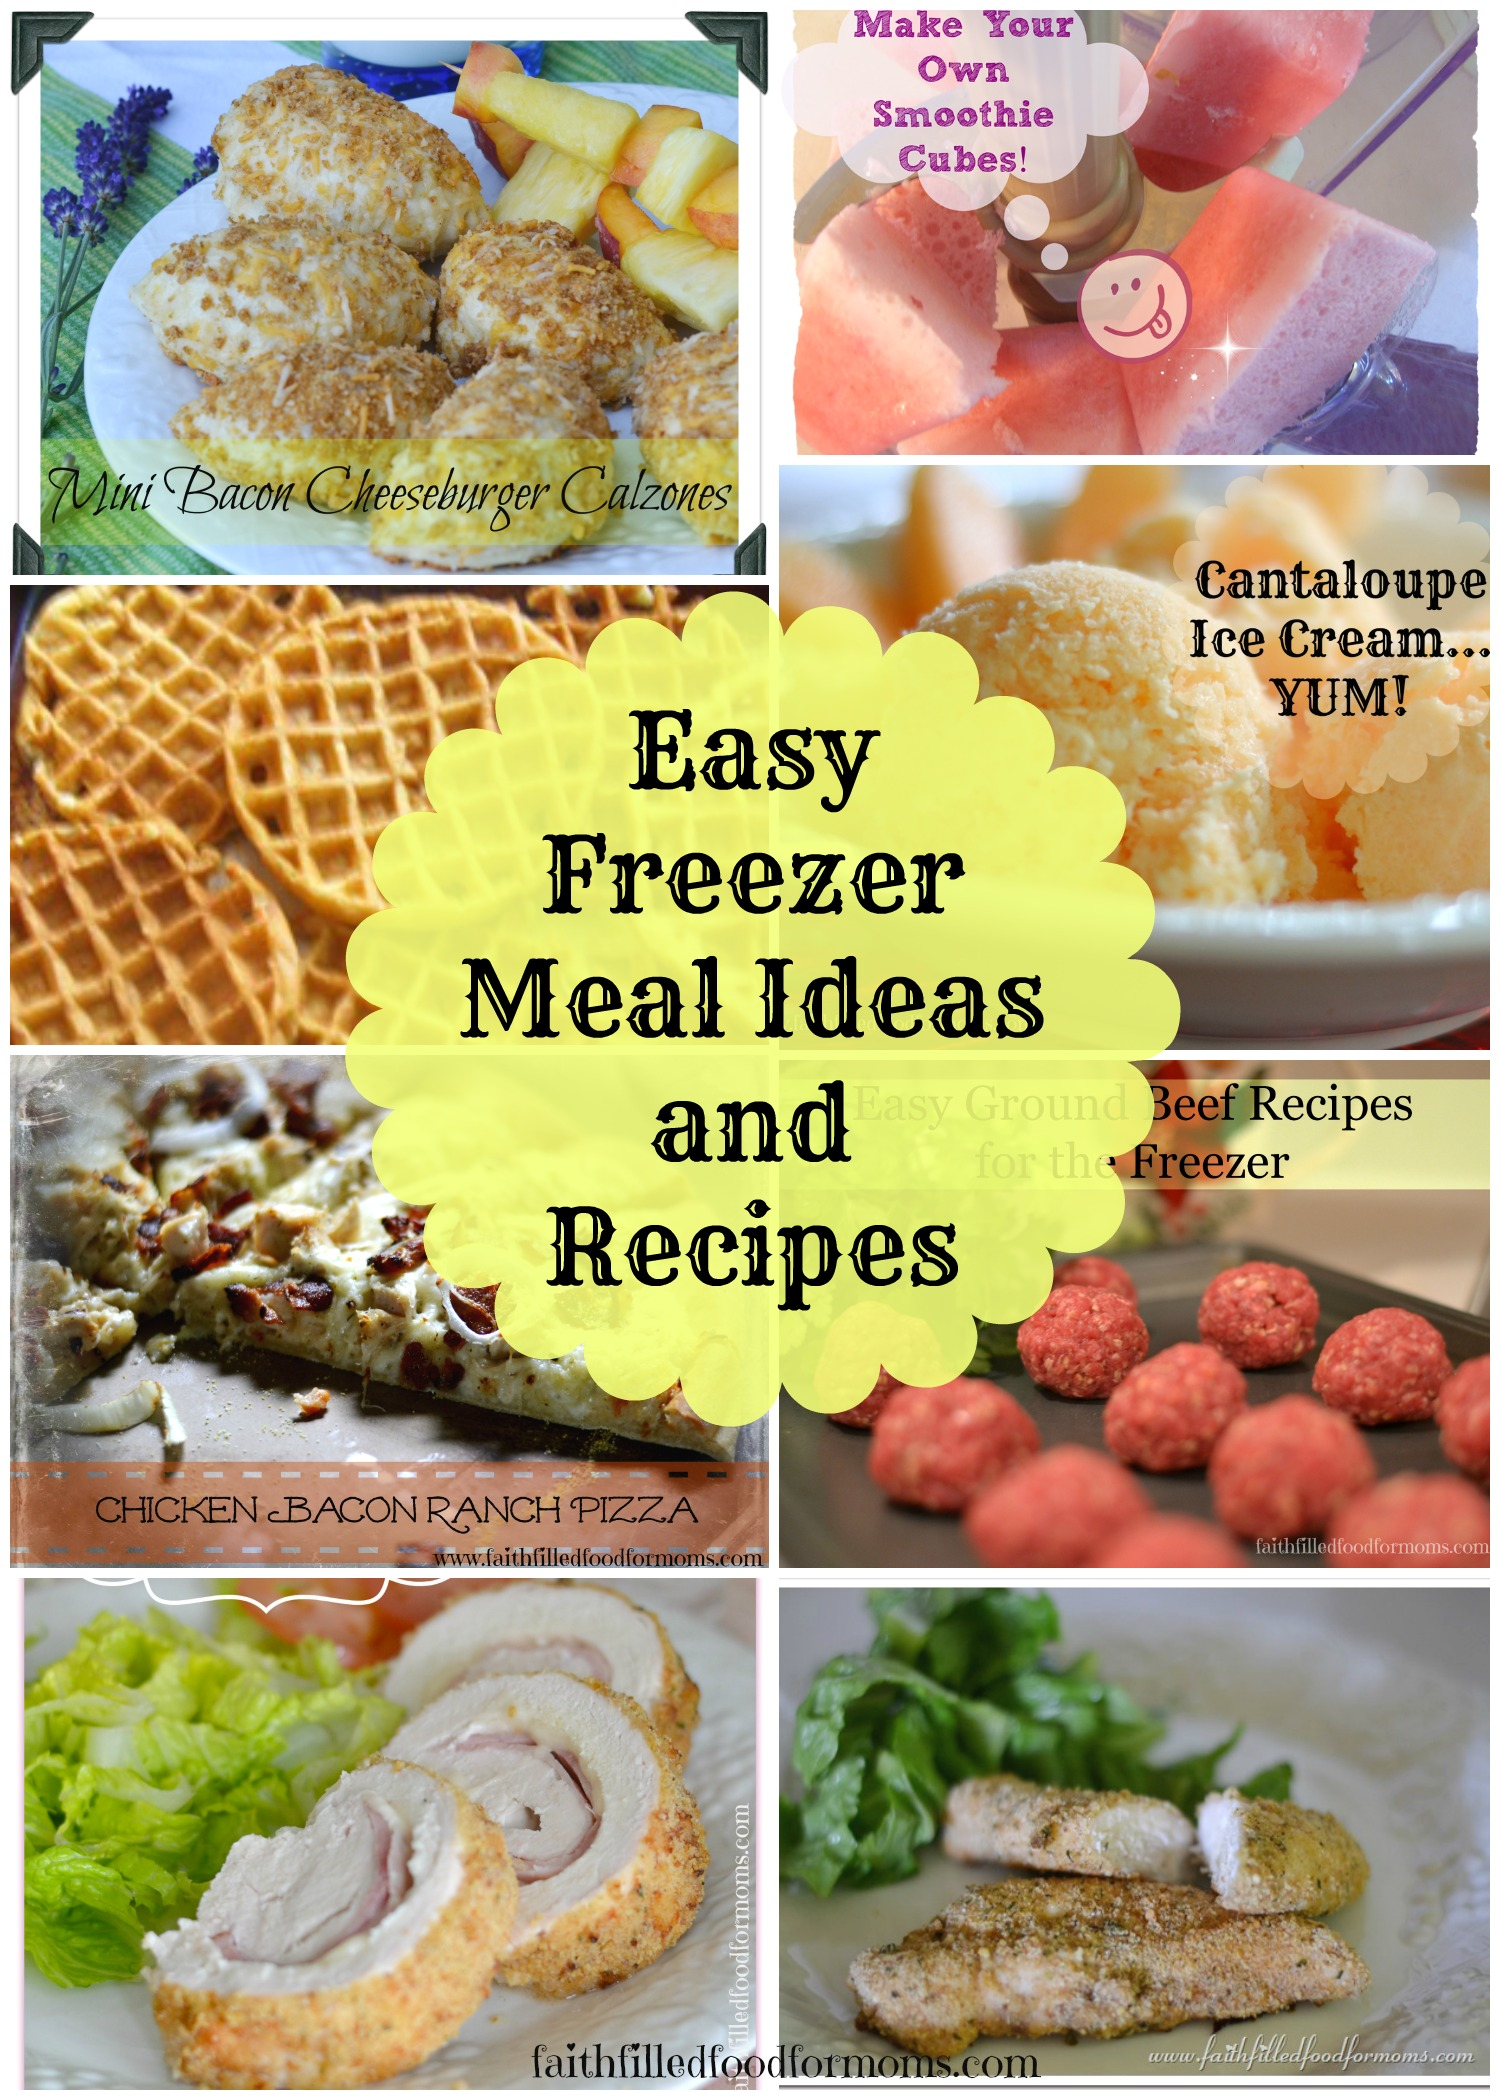 Easy Freezer Meal Ideas And Recipes • Faith Filled Food